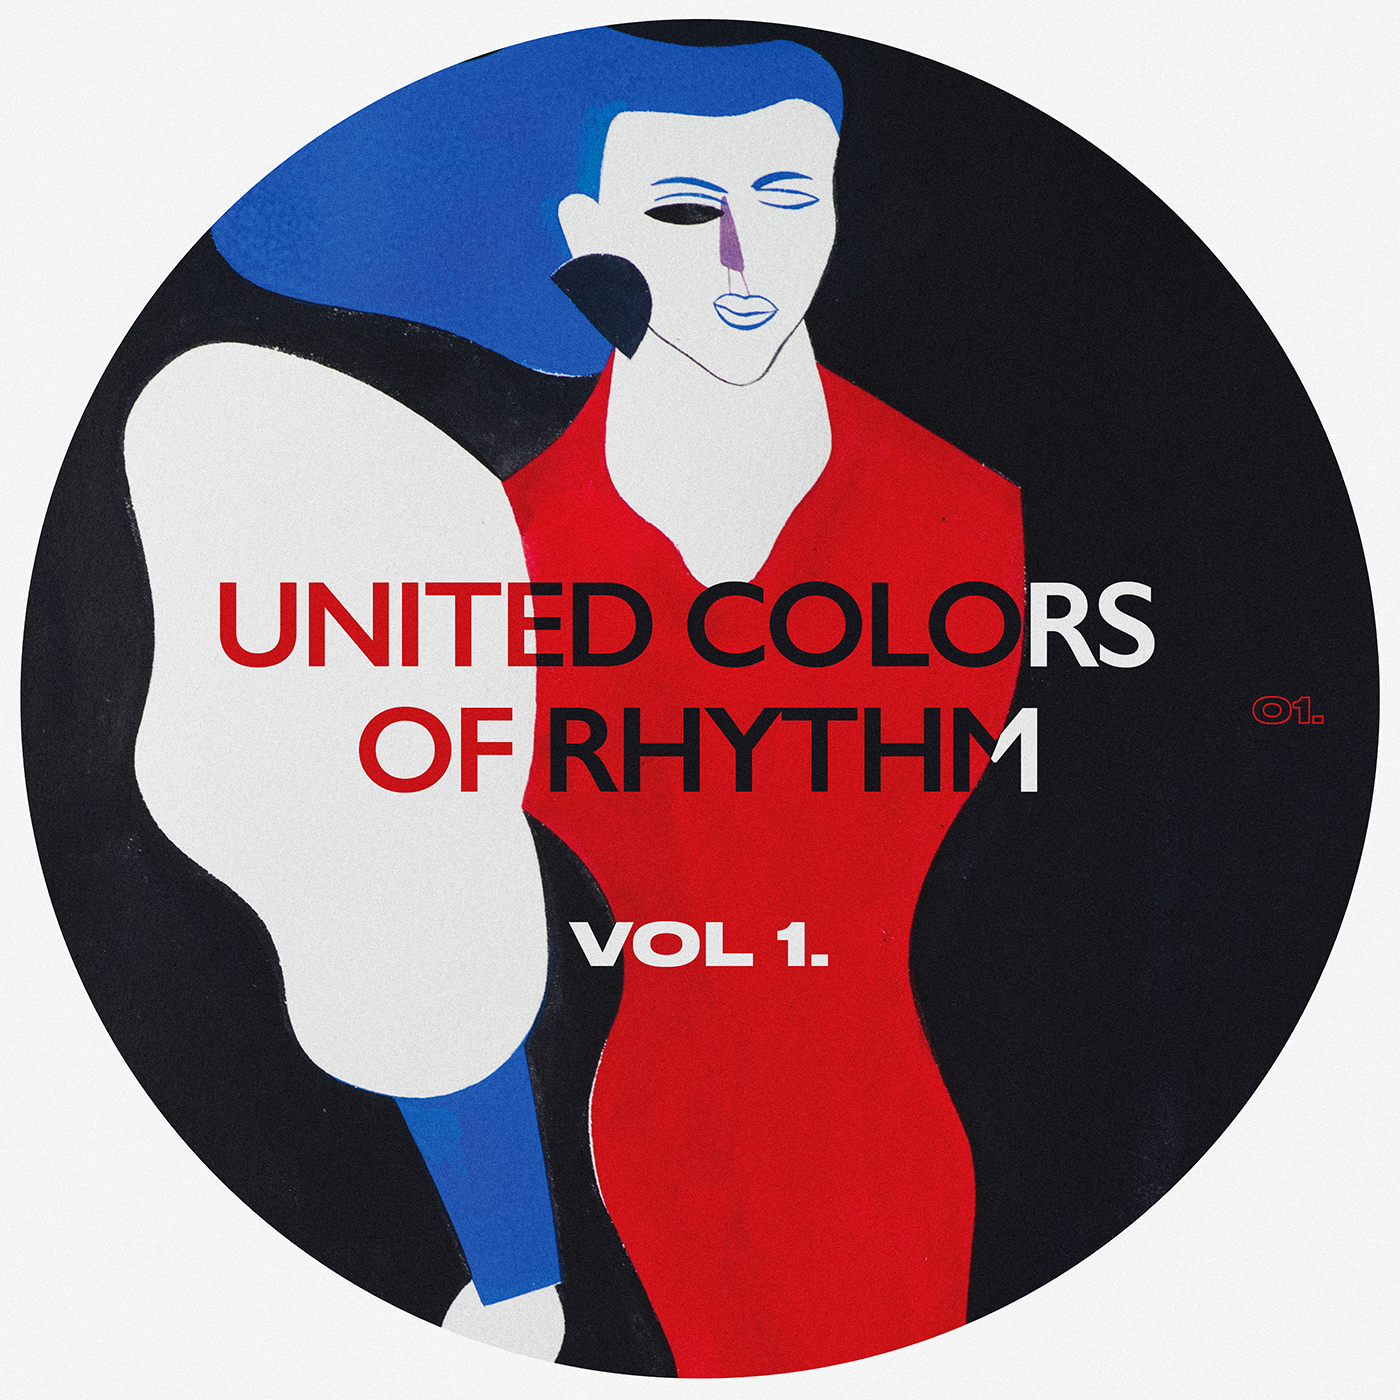 PREMIERE – Balam – Yucatan (United Colors of Rhythm)